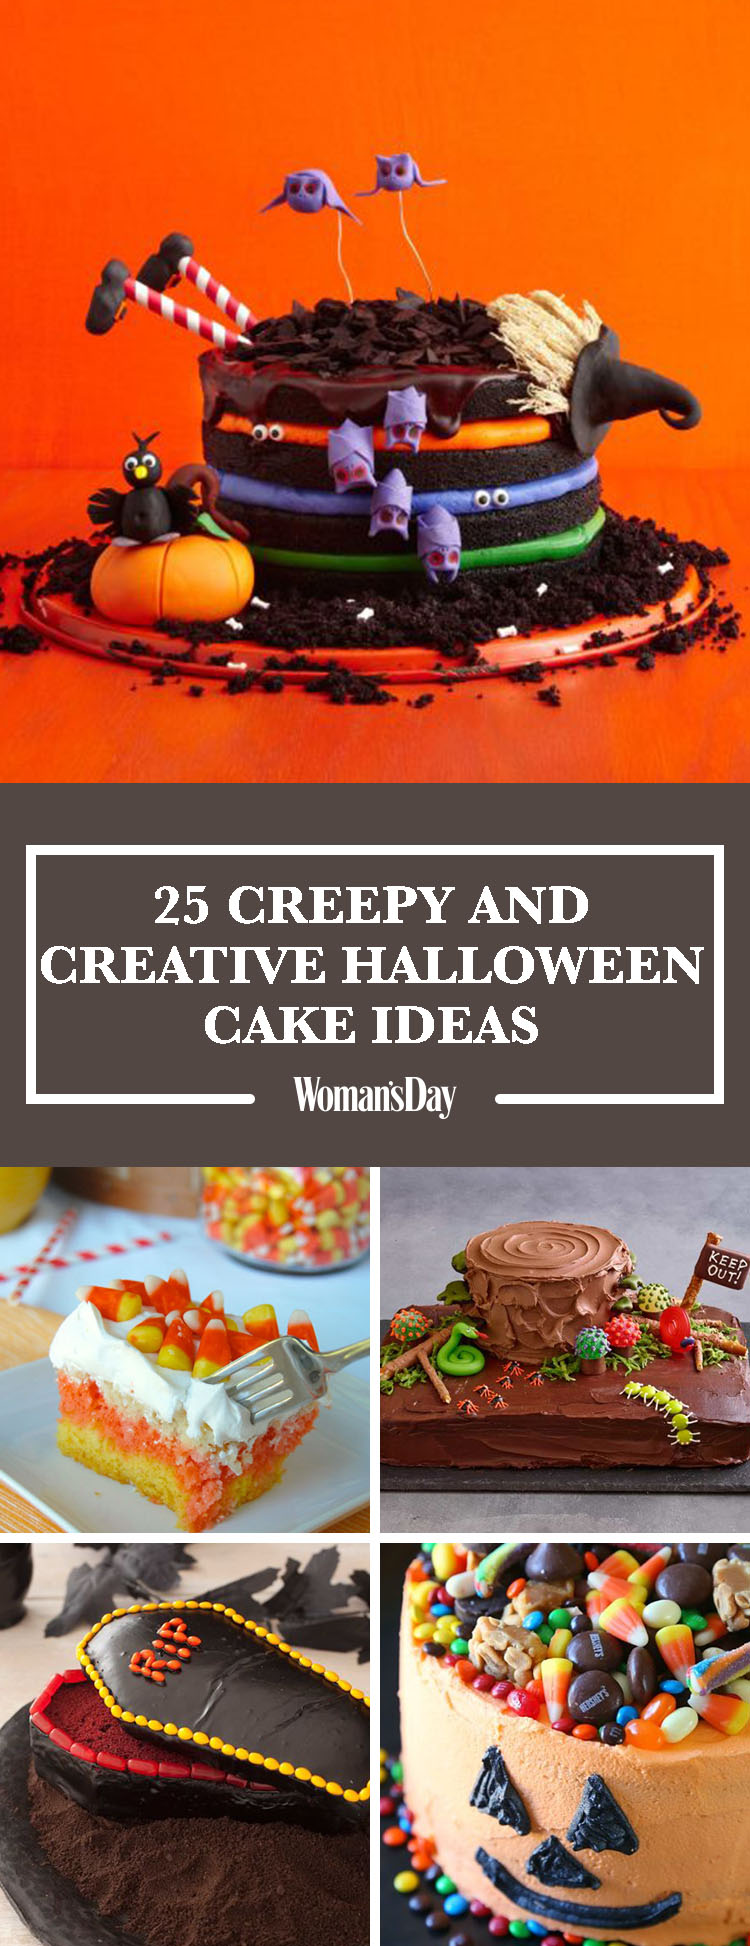 30 easy halloween cakes recipes ideas for halloween cake decorating - Halloween Decorated Cakes